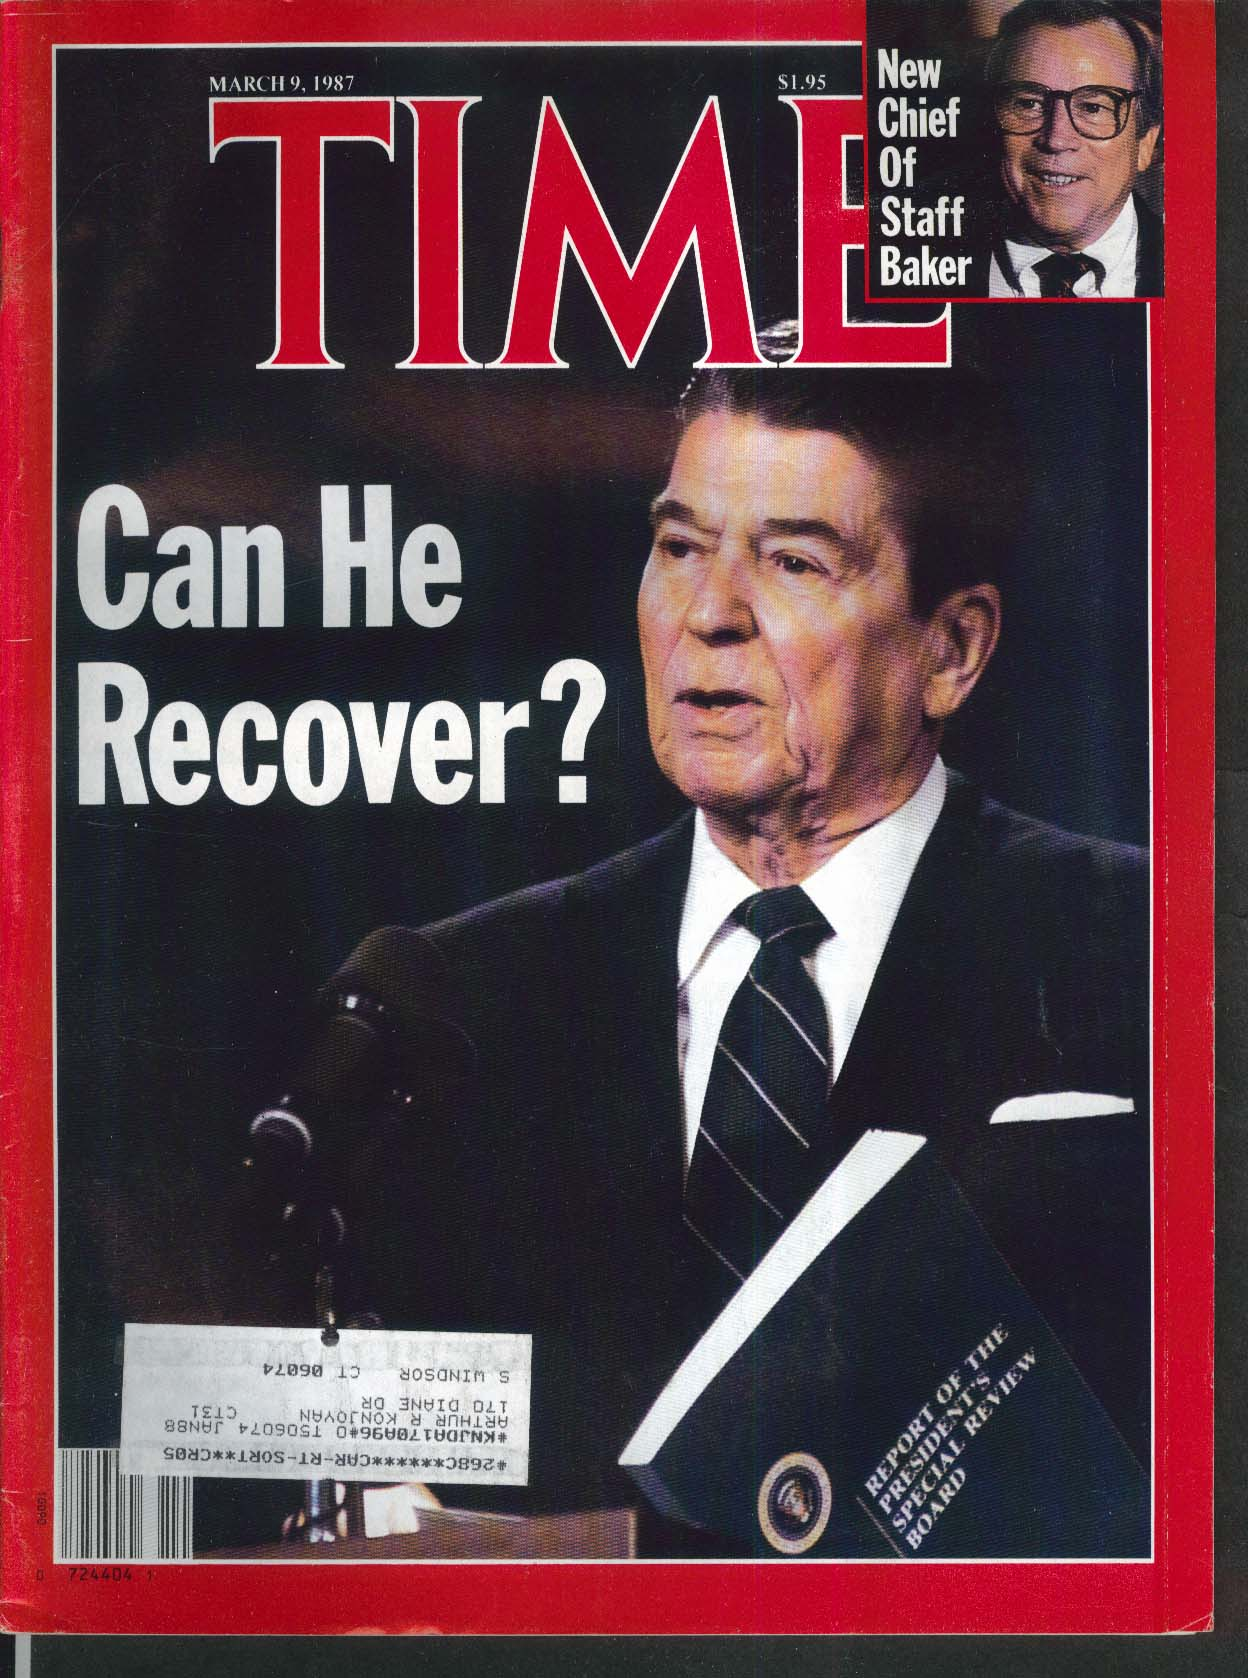 a history of the iran contra affair two covert operations under ronald reagans administration Start studying us history chapter 26 learn vocabulary,  giving the whole matter the name iran-contra affair  state the two events in 1986 which limited reagan's effectiveness in the last two years of his administration.